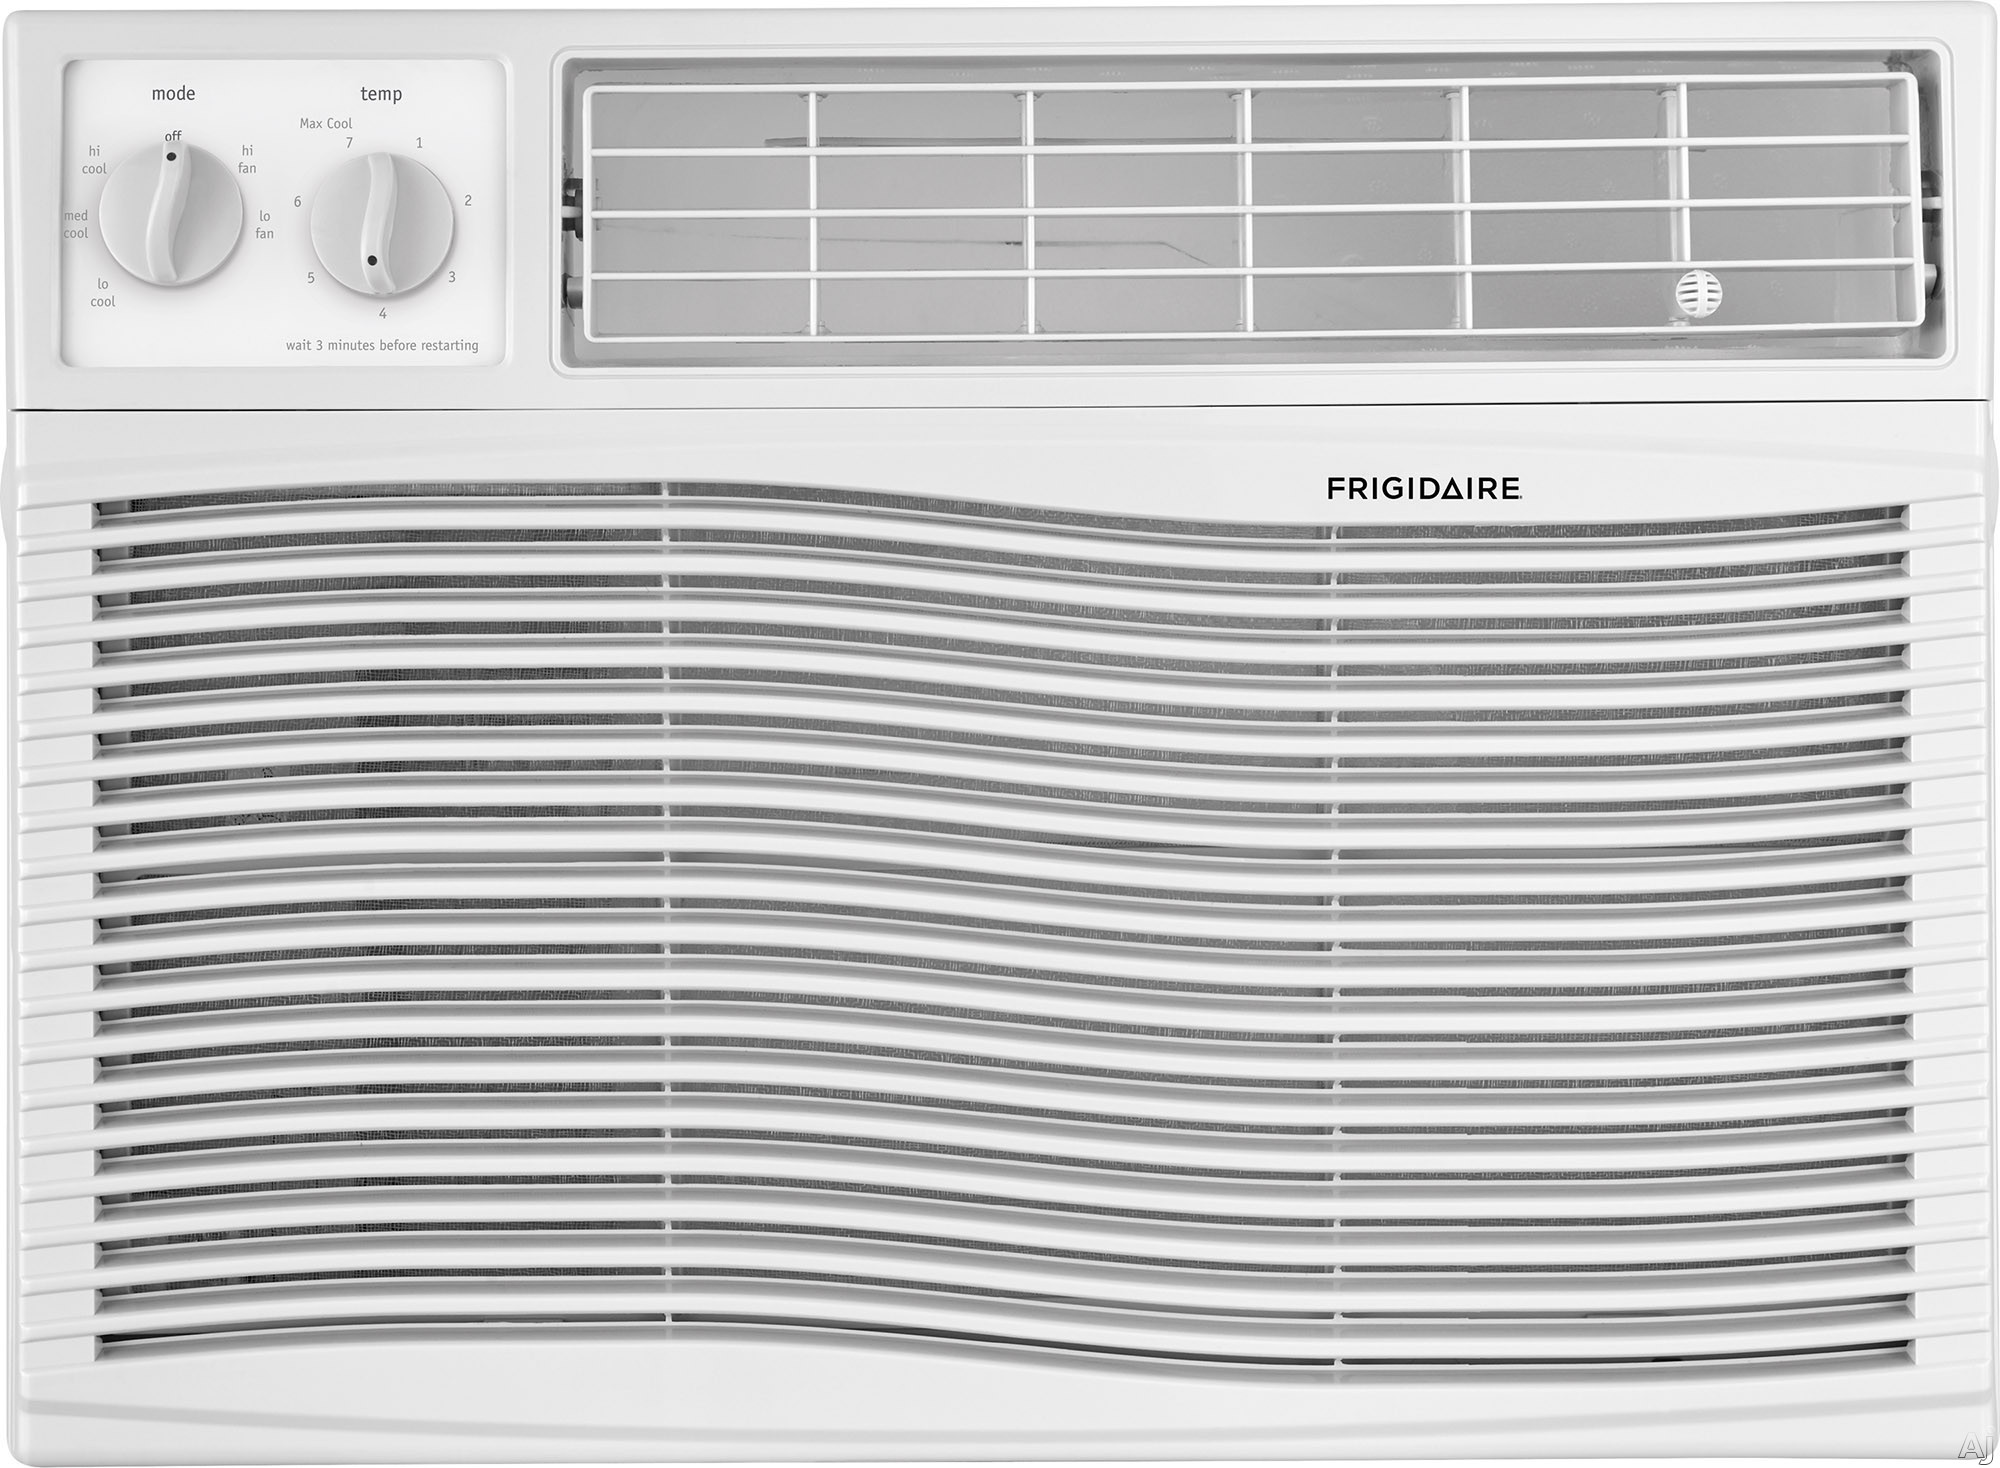 Frigidaire FFRA1211U1 12,000 BTU Room Air Conditioner with Effortless™ Temperature Control, Programmable 24-Hour Timer, Effortless™ Clean Filter, Effortless™ Restart, SpaceWise® A